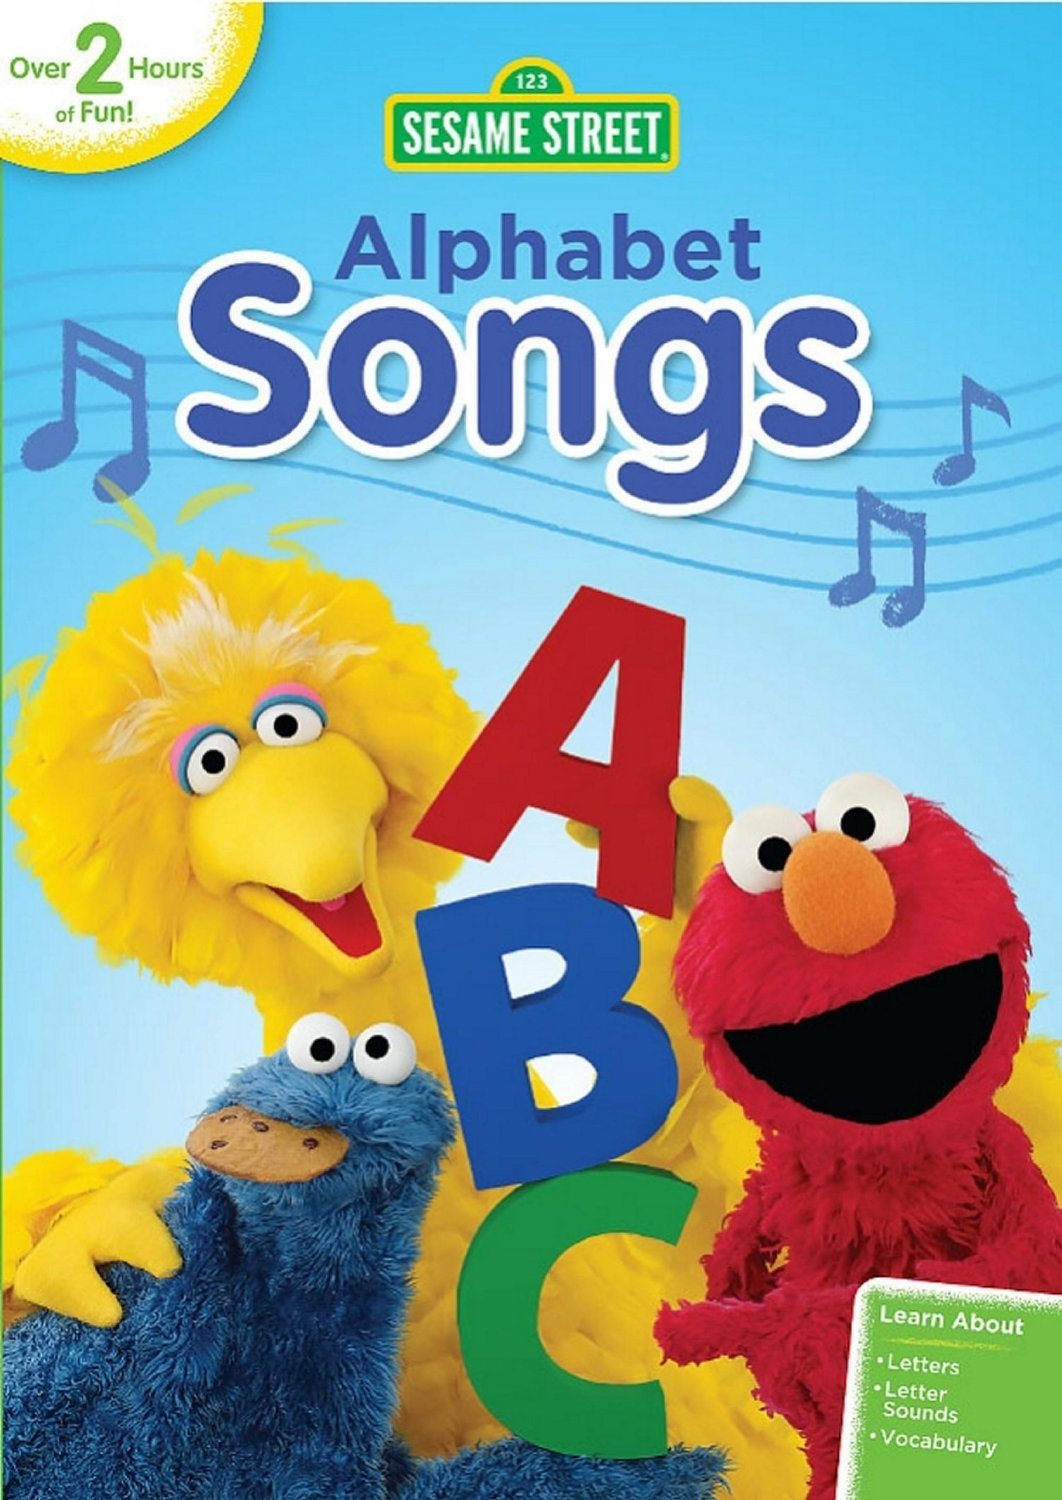 Best Karaoke Machine Kids further Swing When You're Winning as well Sesame Street Alphabet Songs Now moreover Trolls 2016 in addition View. on sing with me cd player